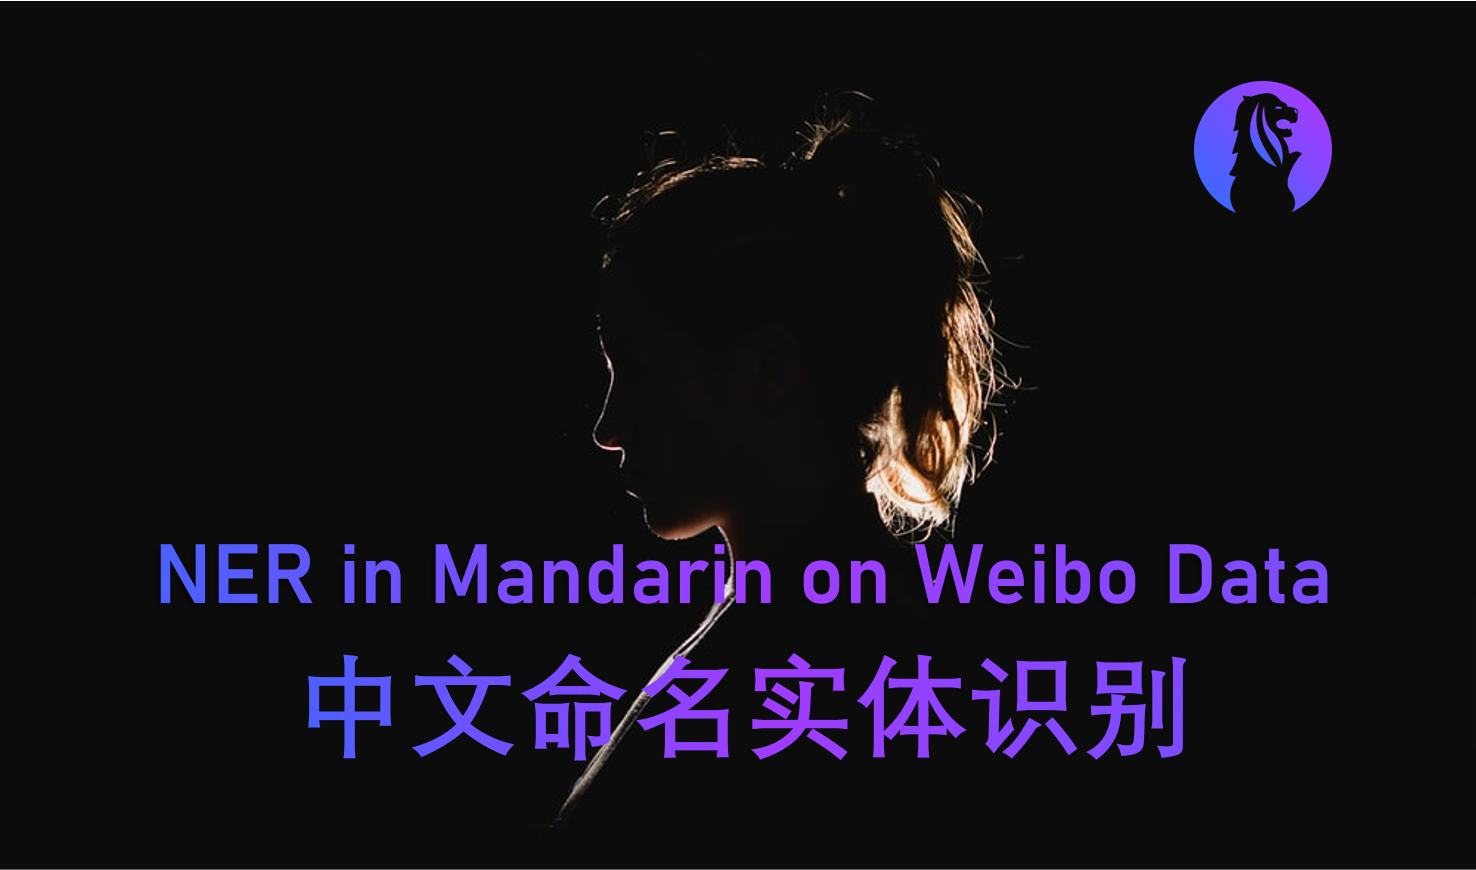 Named Entity Recognition on Weibo in Mandarin